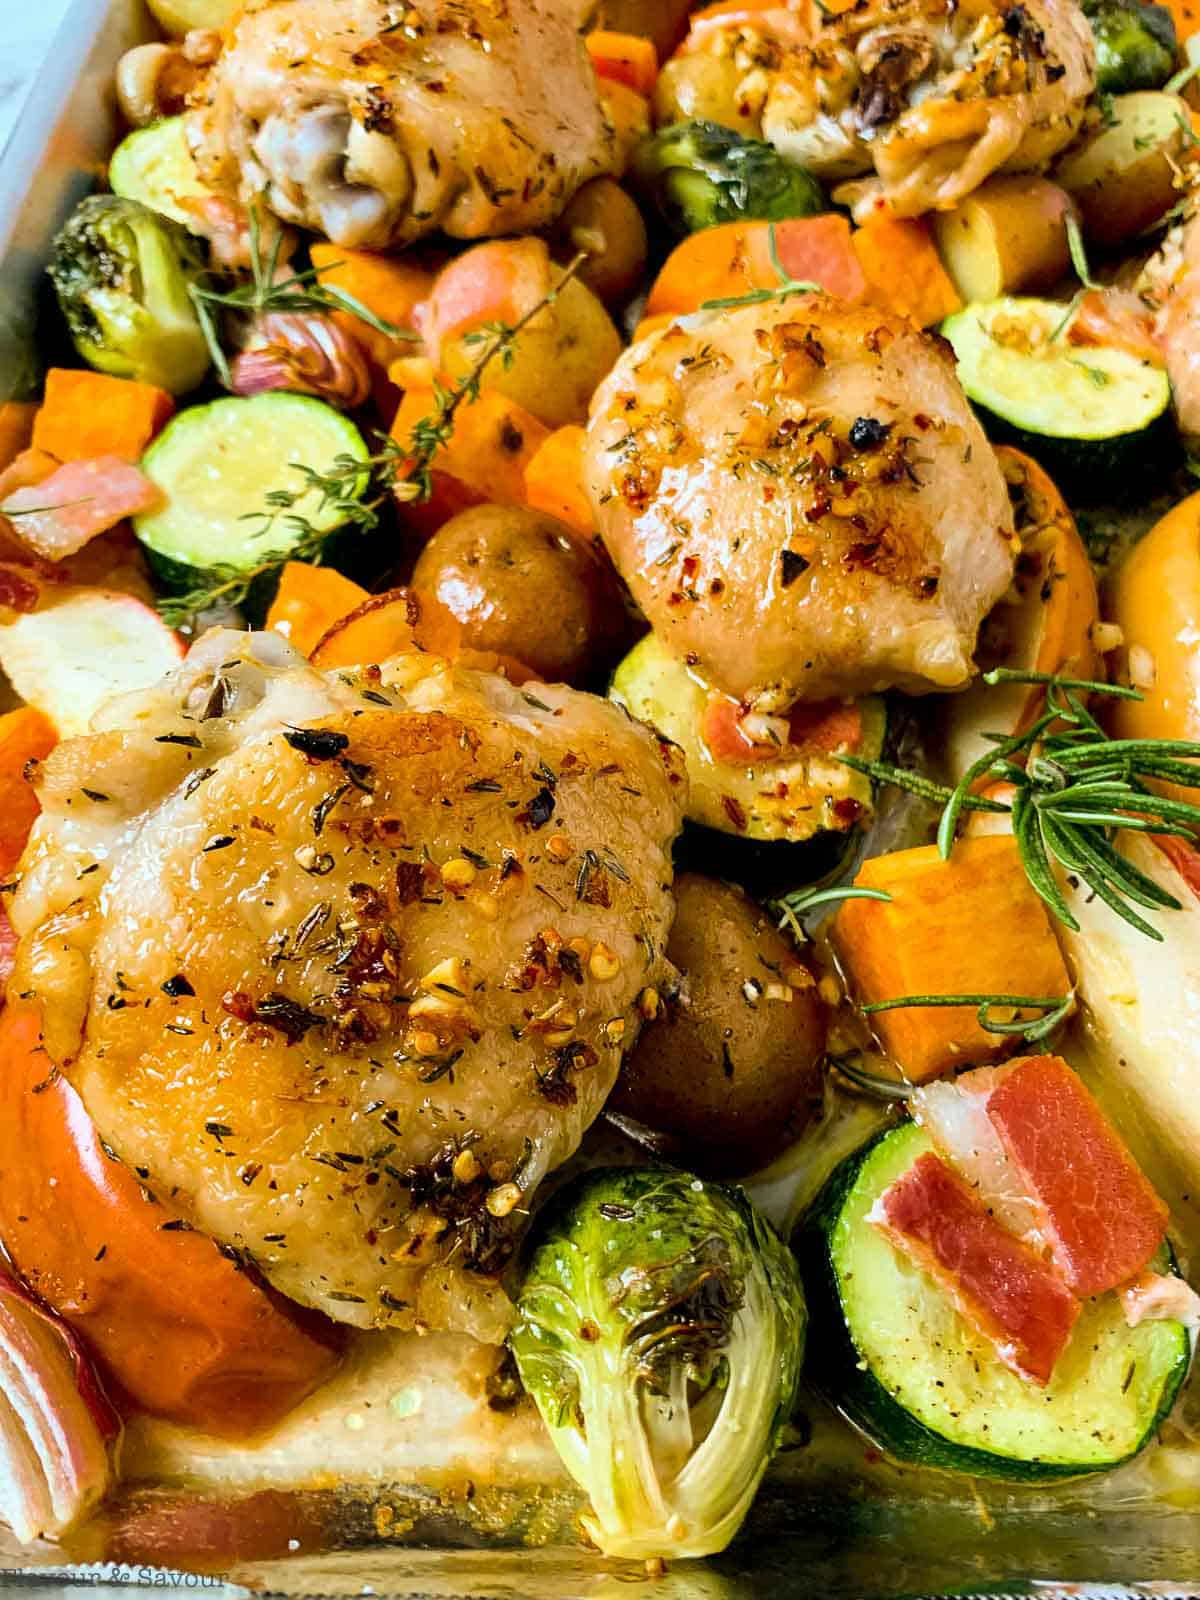 Roasted chicken thighs and fall vegetables on a sheet pan